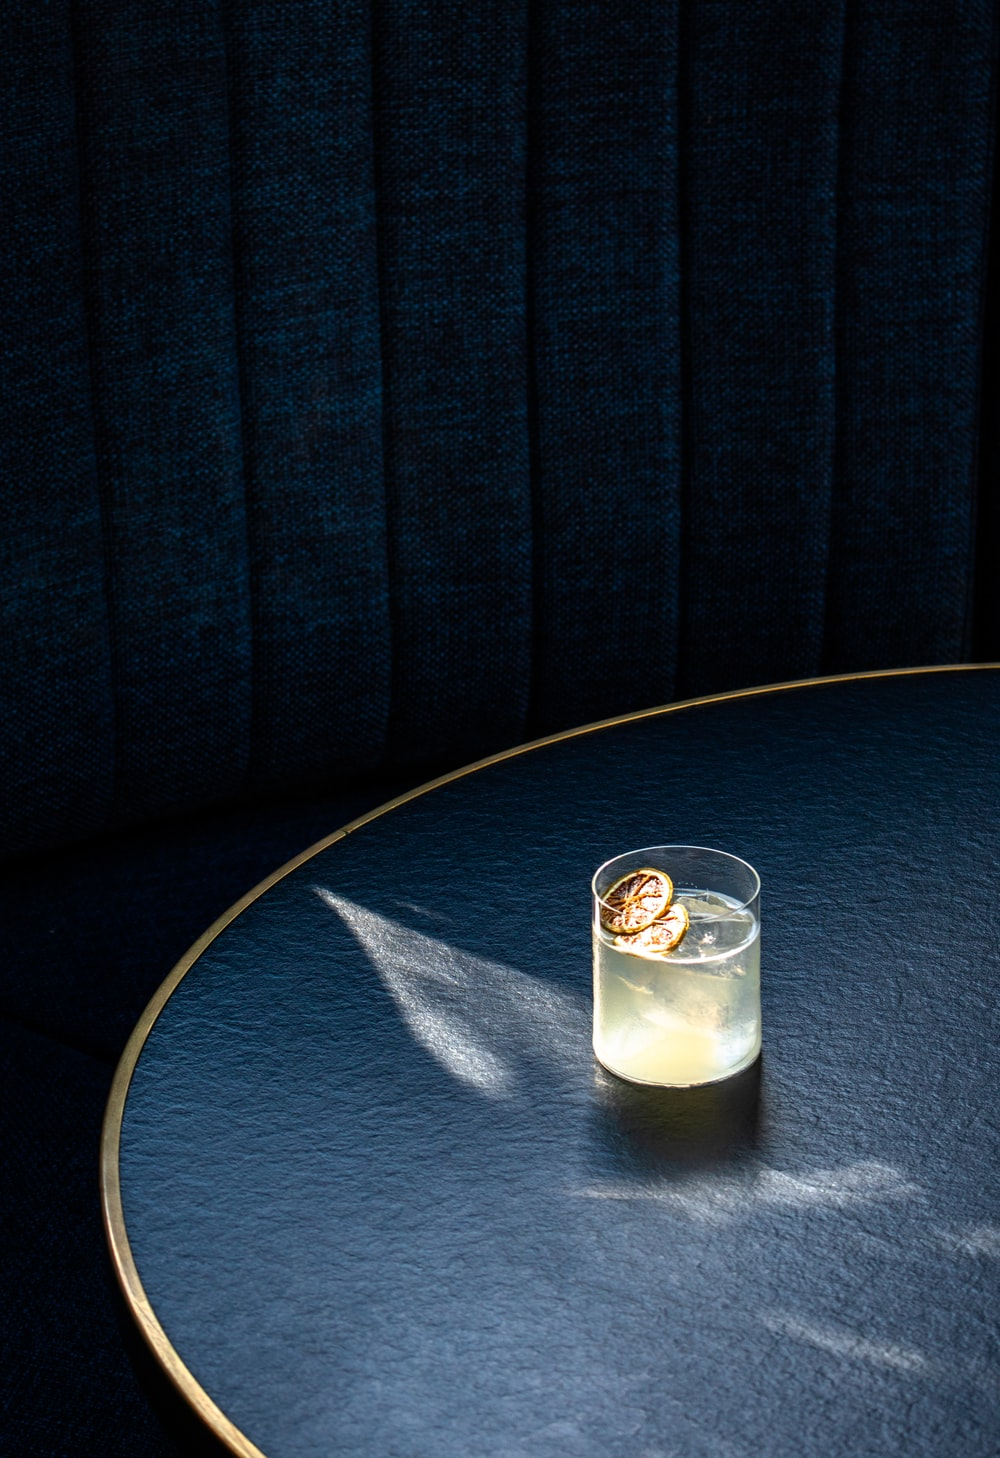 clear drinking glass with white liquid on blue round table